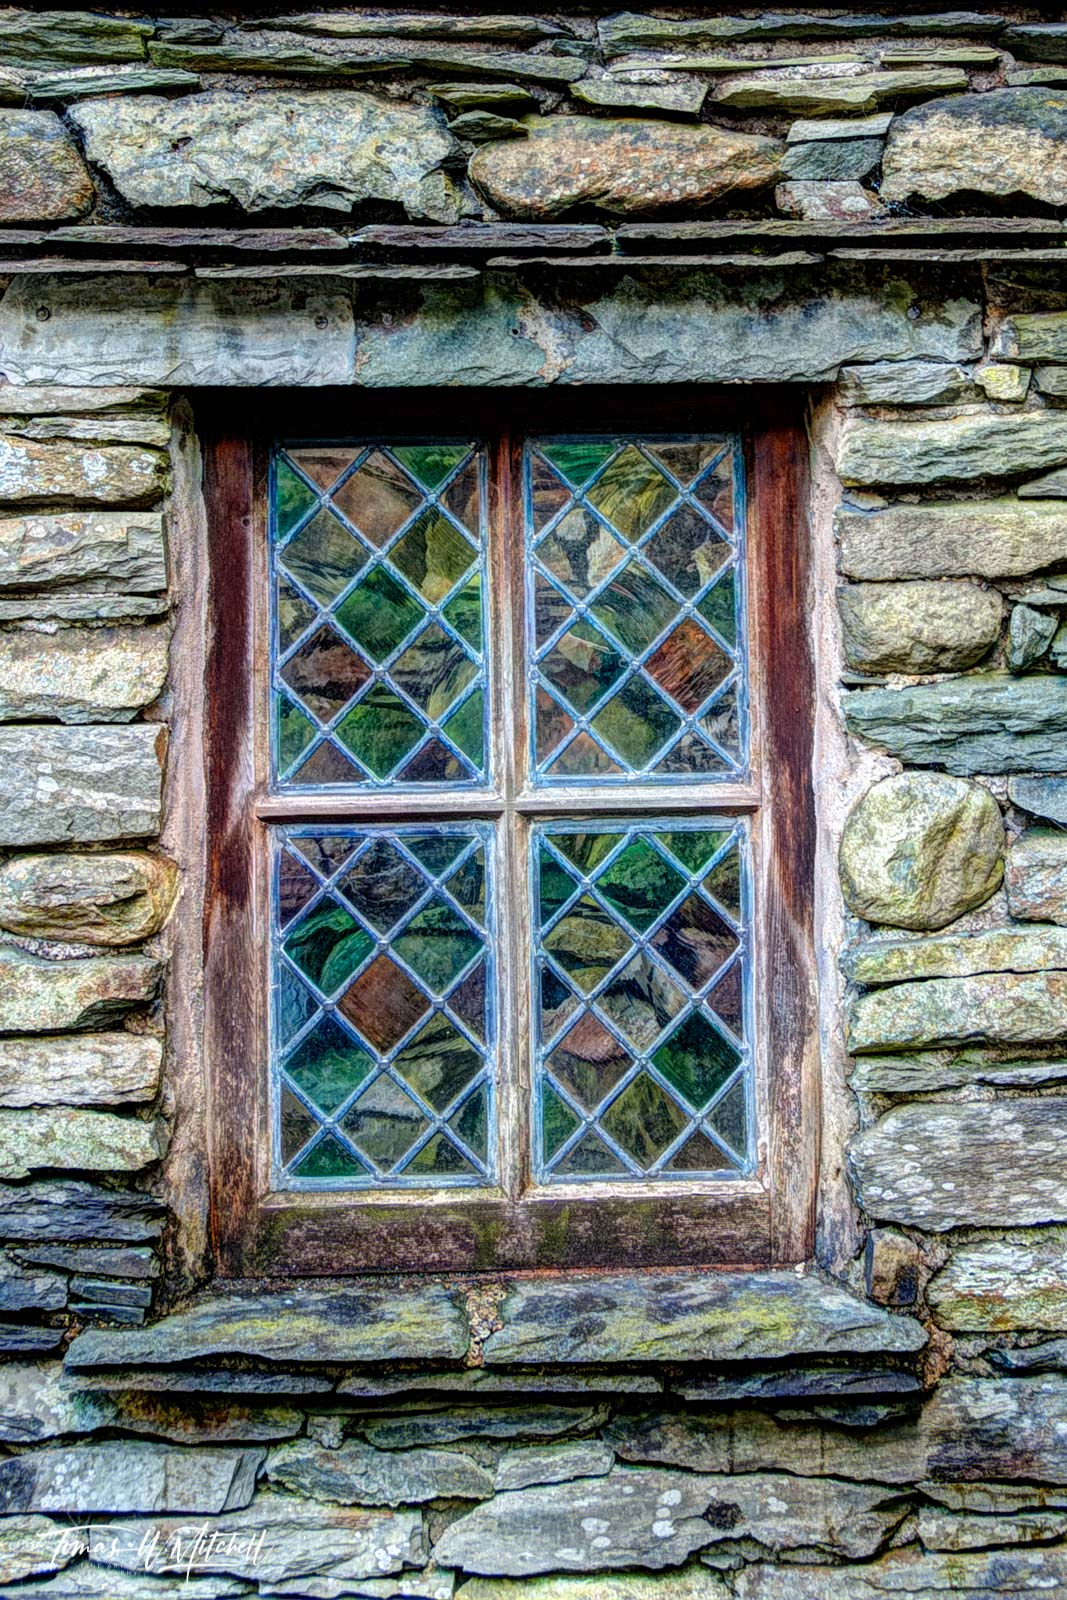 limited edition, museum grade, fine art, prints, photograph, window, grasmere, lake district, england, doors, reflection, rainbow, color, building, forest side hotel, photo